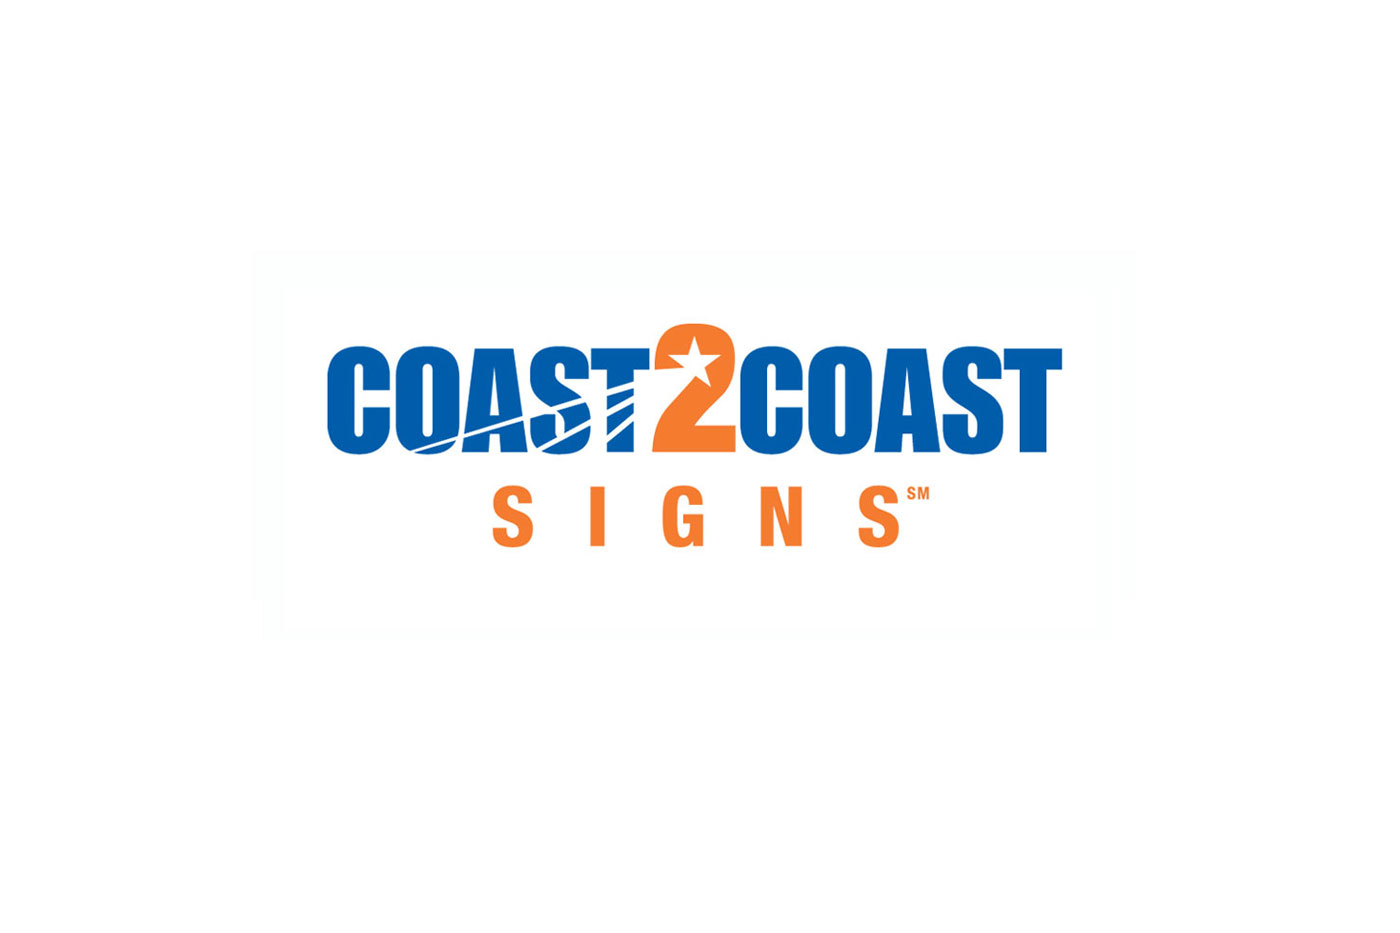 Coast2Coast-Signs-logo